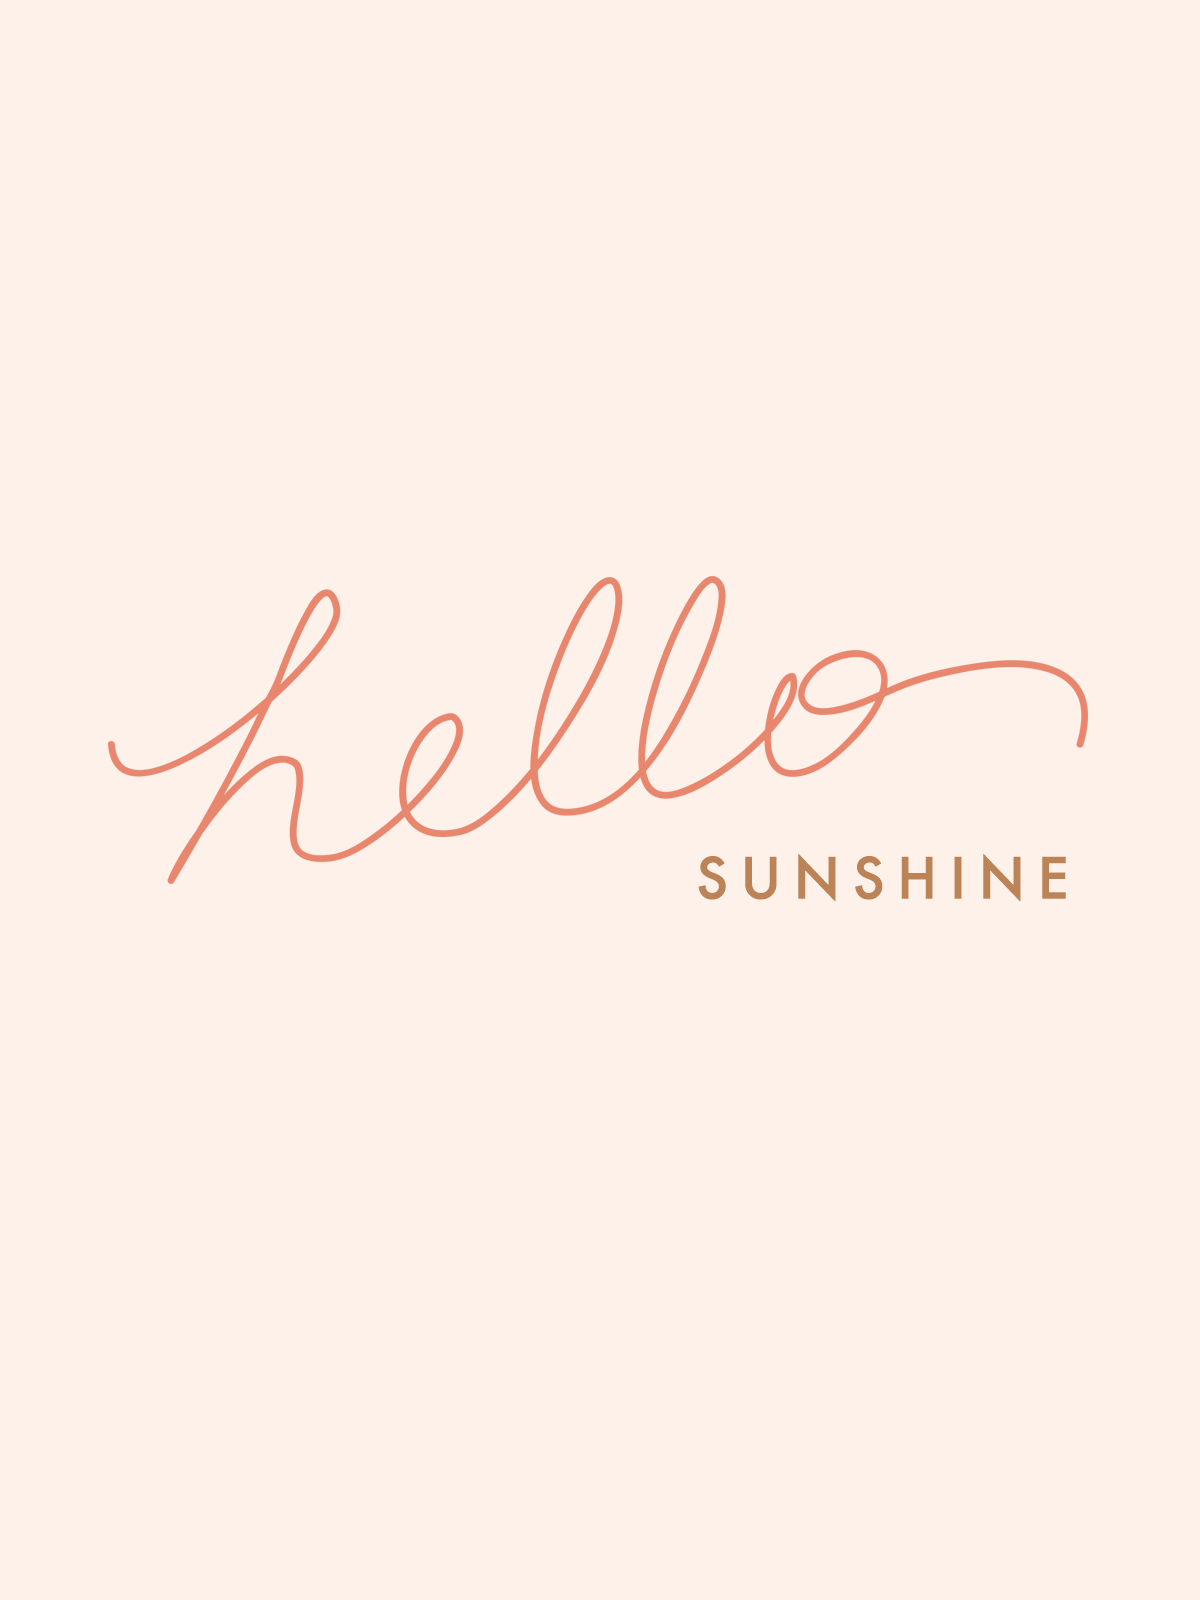 Classy Wallpapers For Iphone Hello Sunshine Wallpaper Download